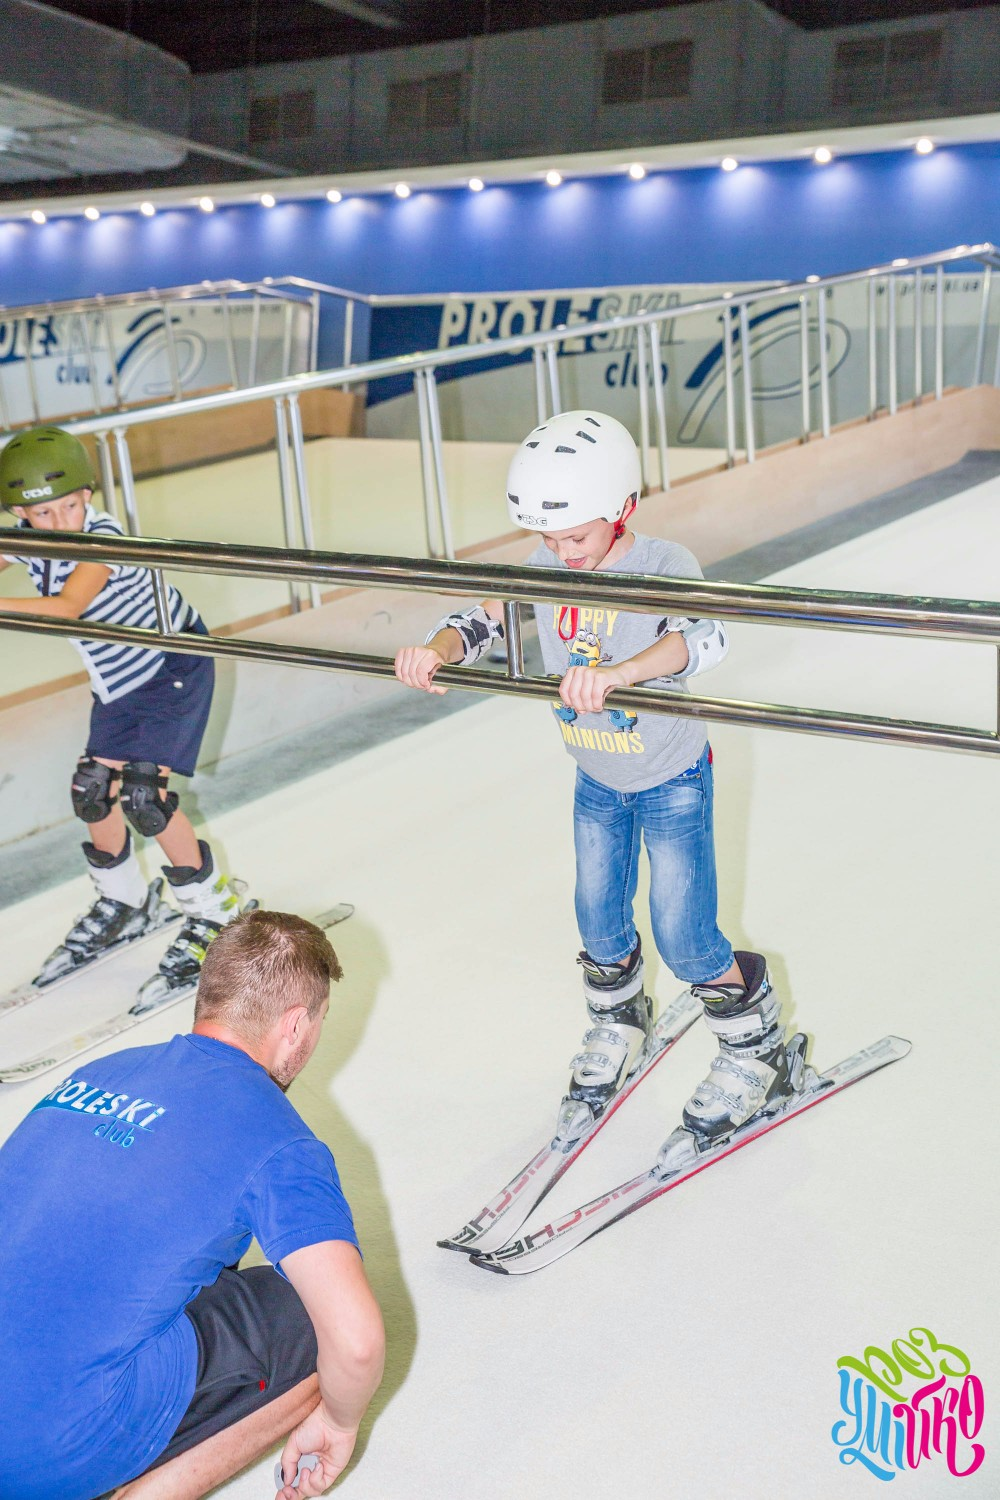 Proleski PRO2 professional training equipment Automatic infinite dry ski slopes Indoor skiing & snowboarding HQ machines